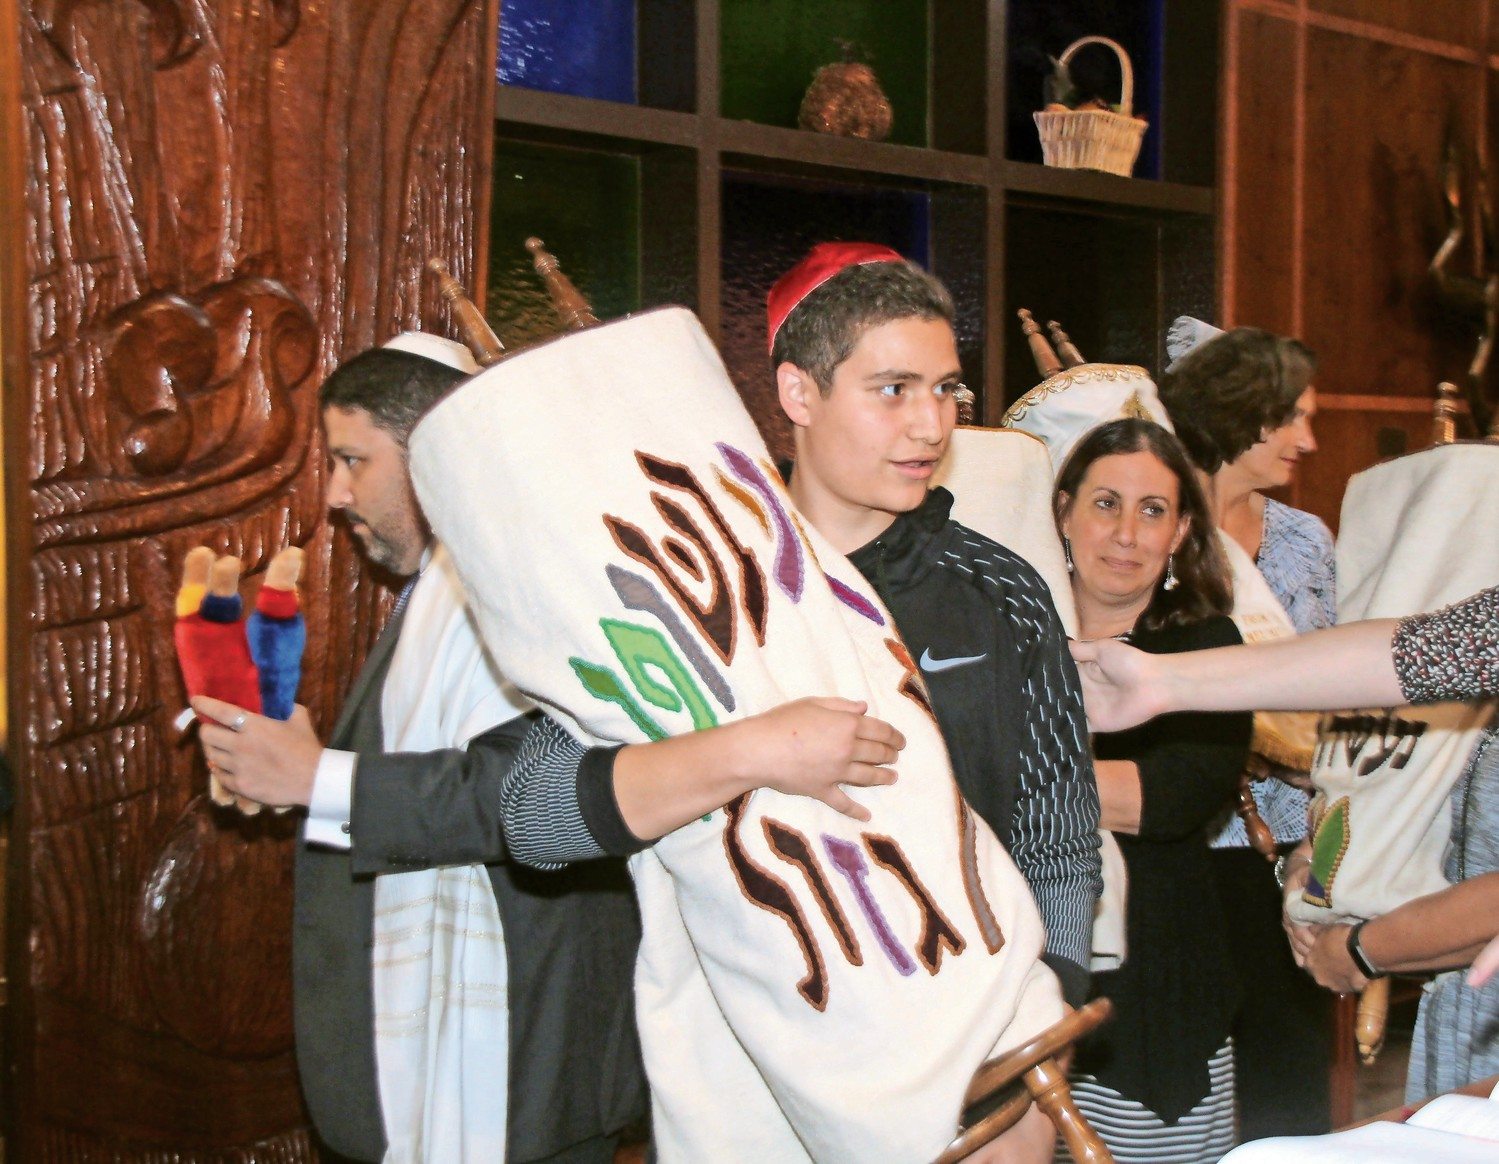 Carrying a Torah scroll, Jacob Scutch carefully held onto it at Simchat service.